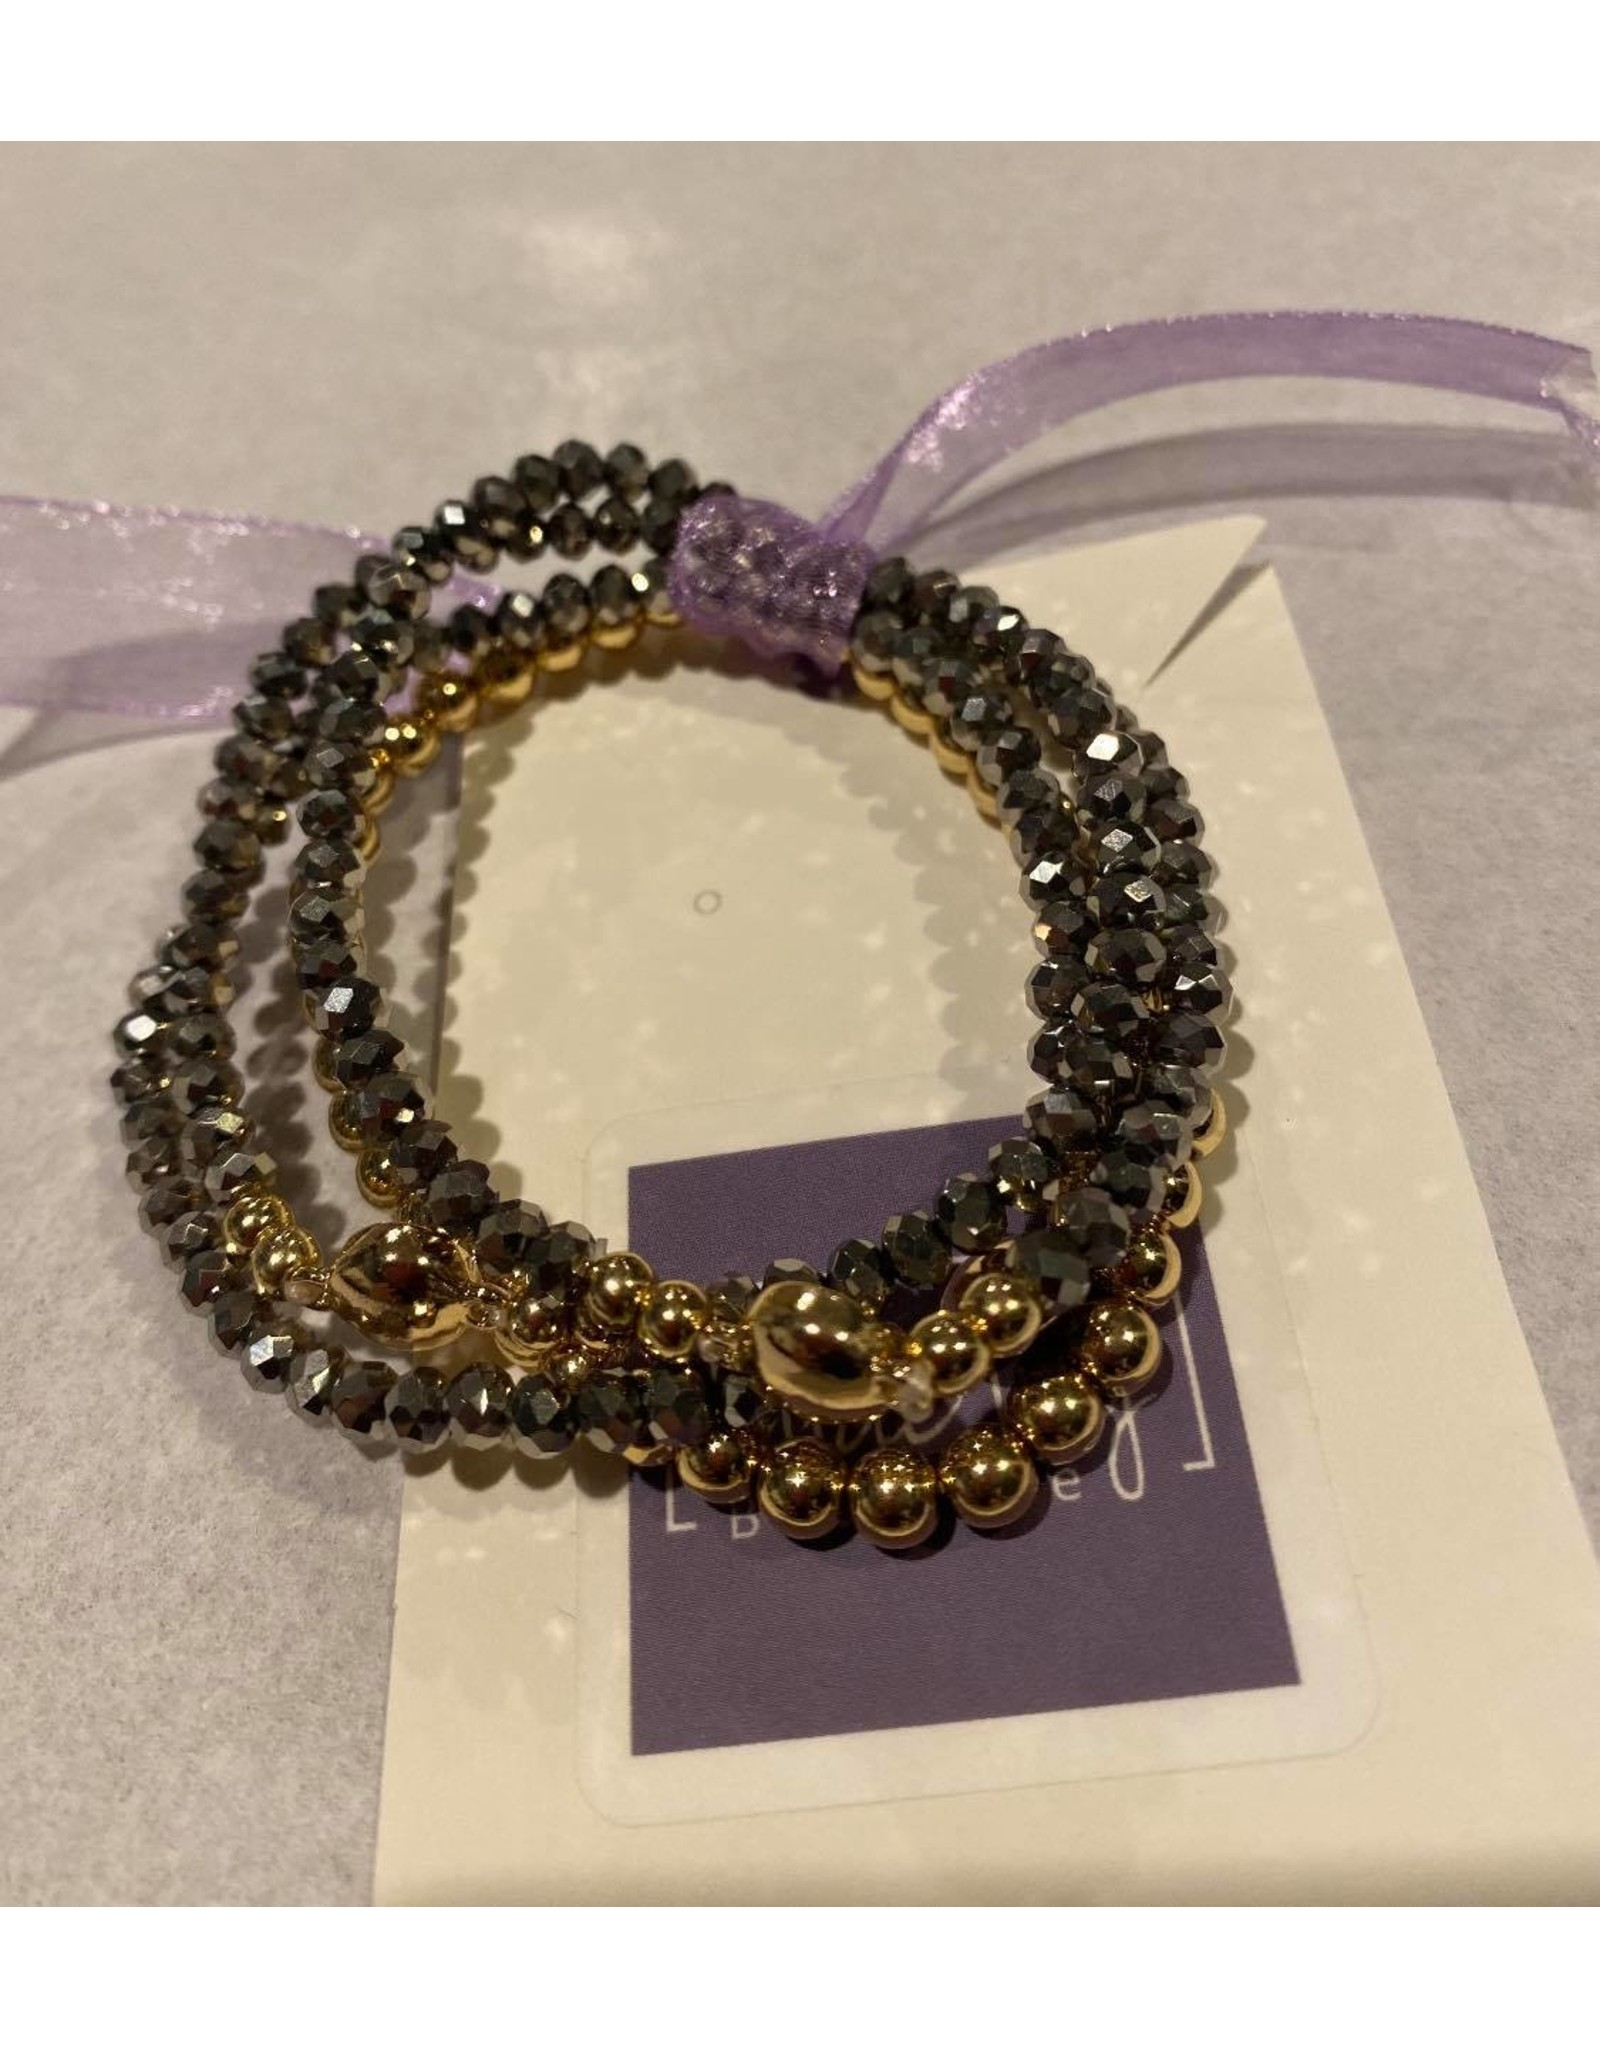 What's Hot Crystal and gold beaded stretch bracelets - maroon, multi or gray